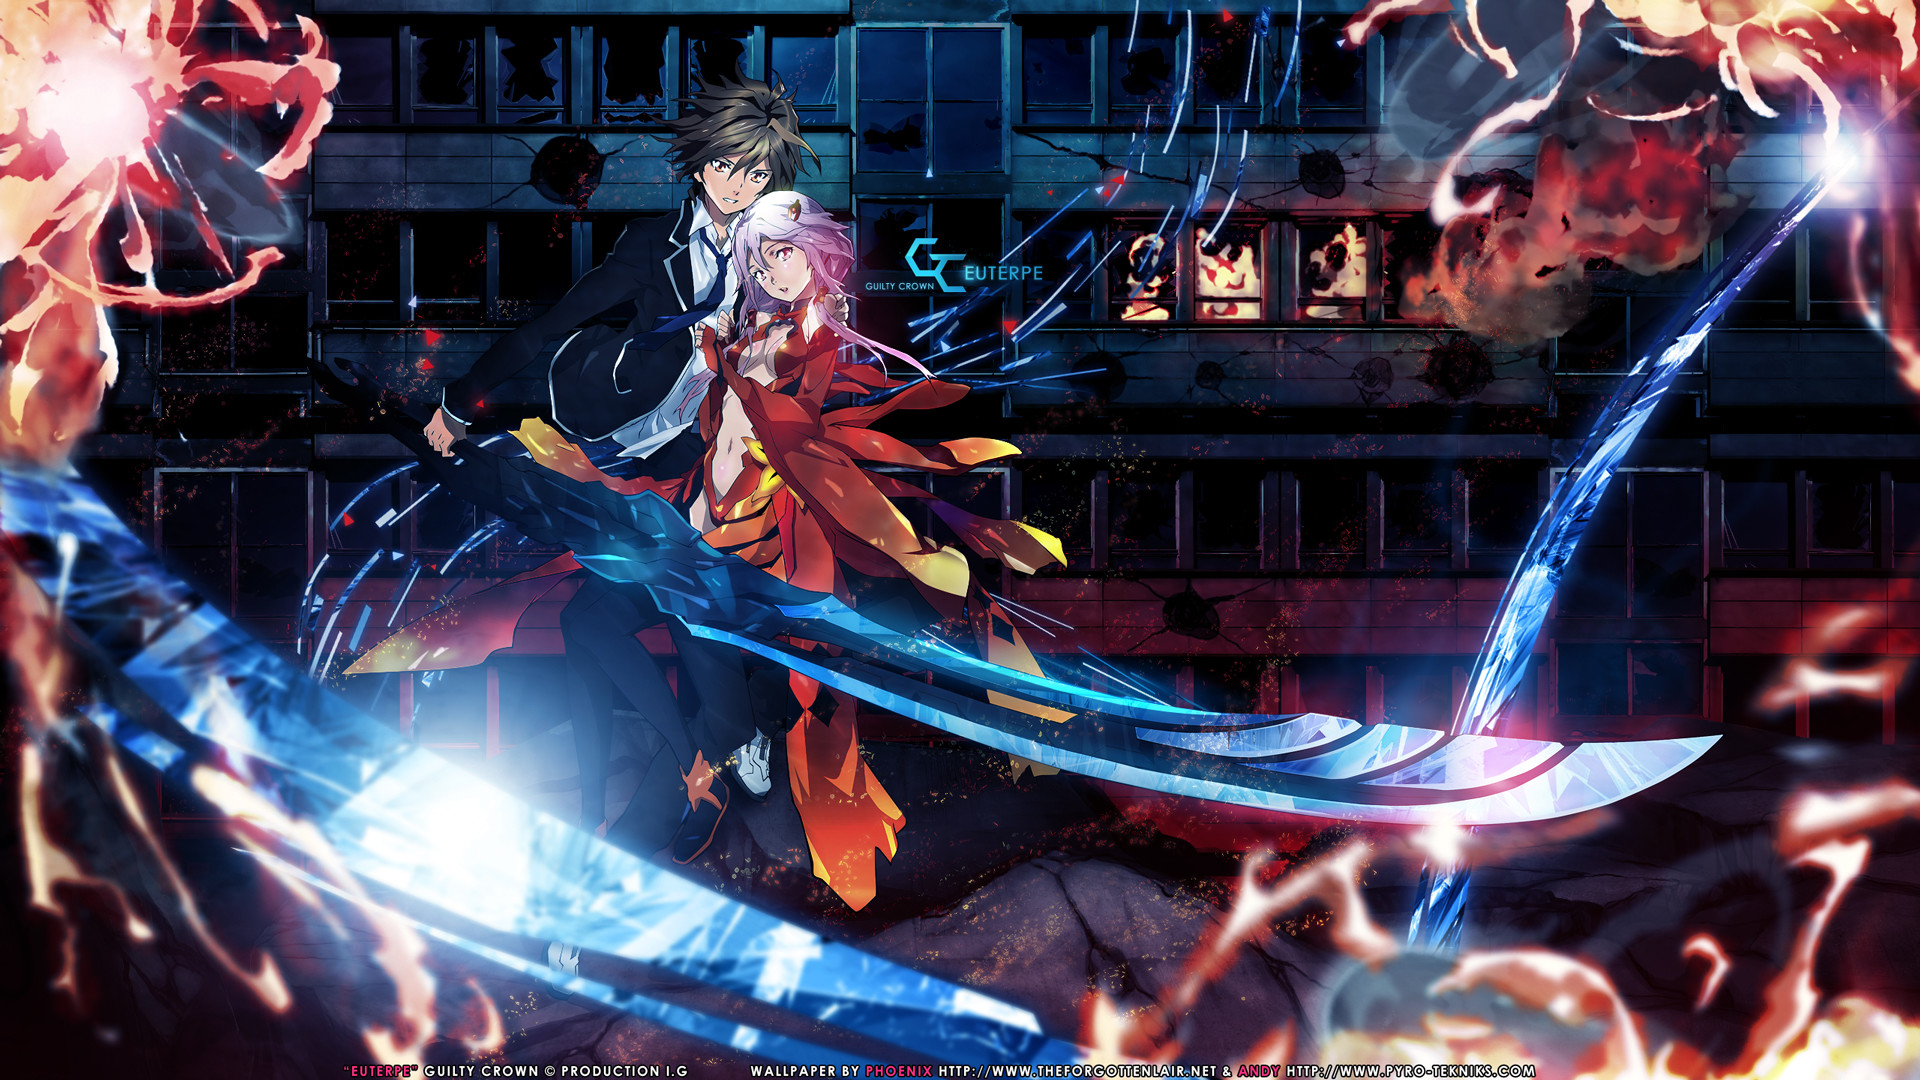 Guilty Crown Wallpaper 1920x1080 85 images 1920x1080